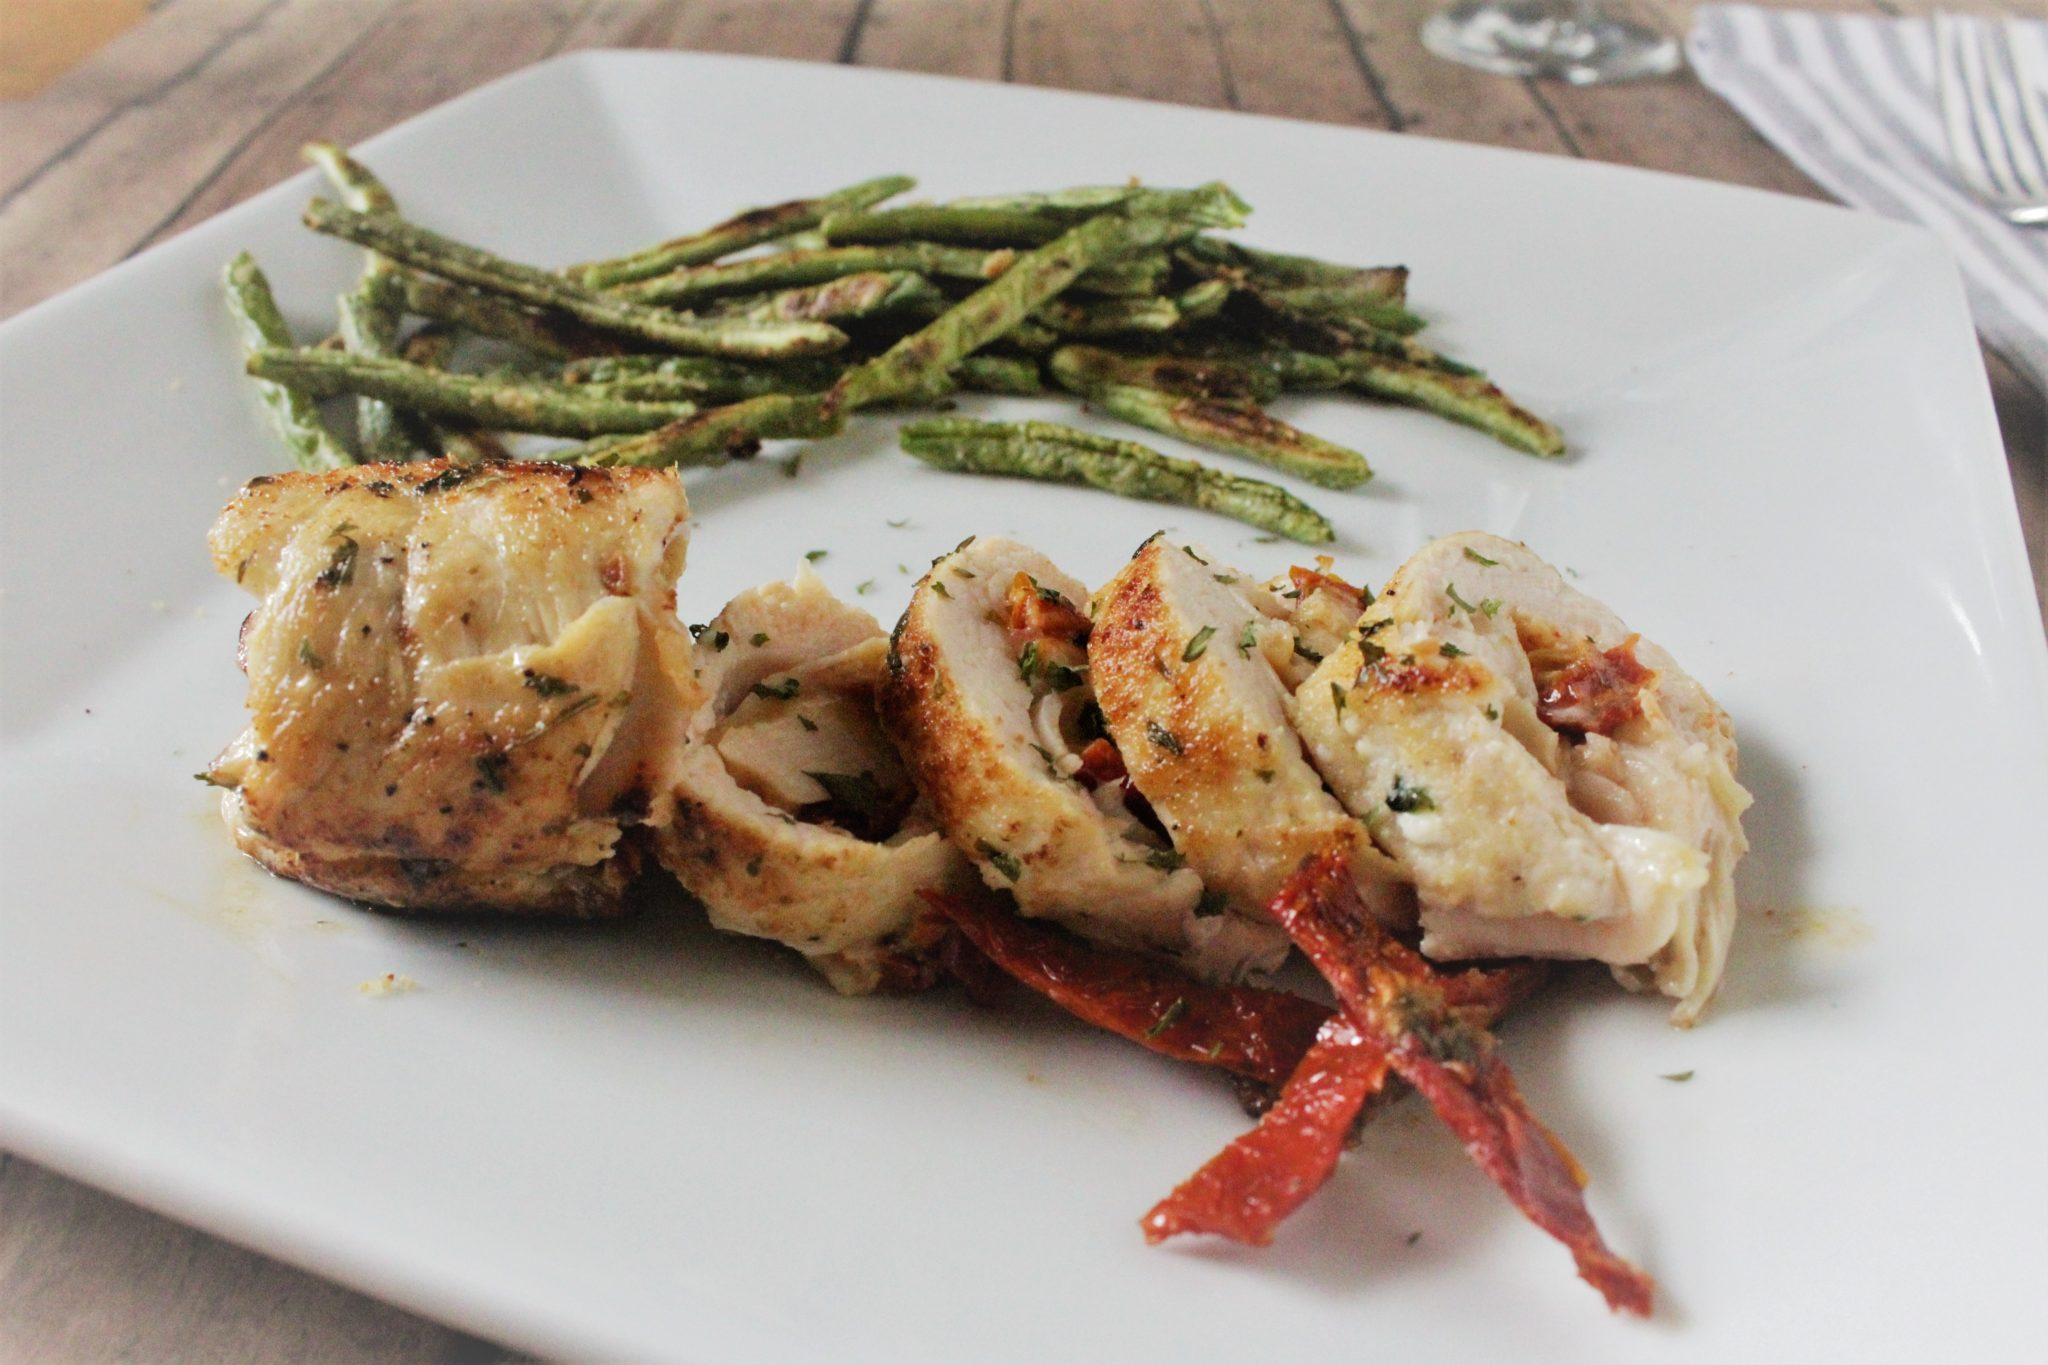 Stuffed Chicken Breast With Roasted Green Beans For Two